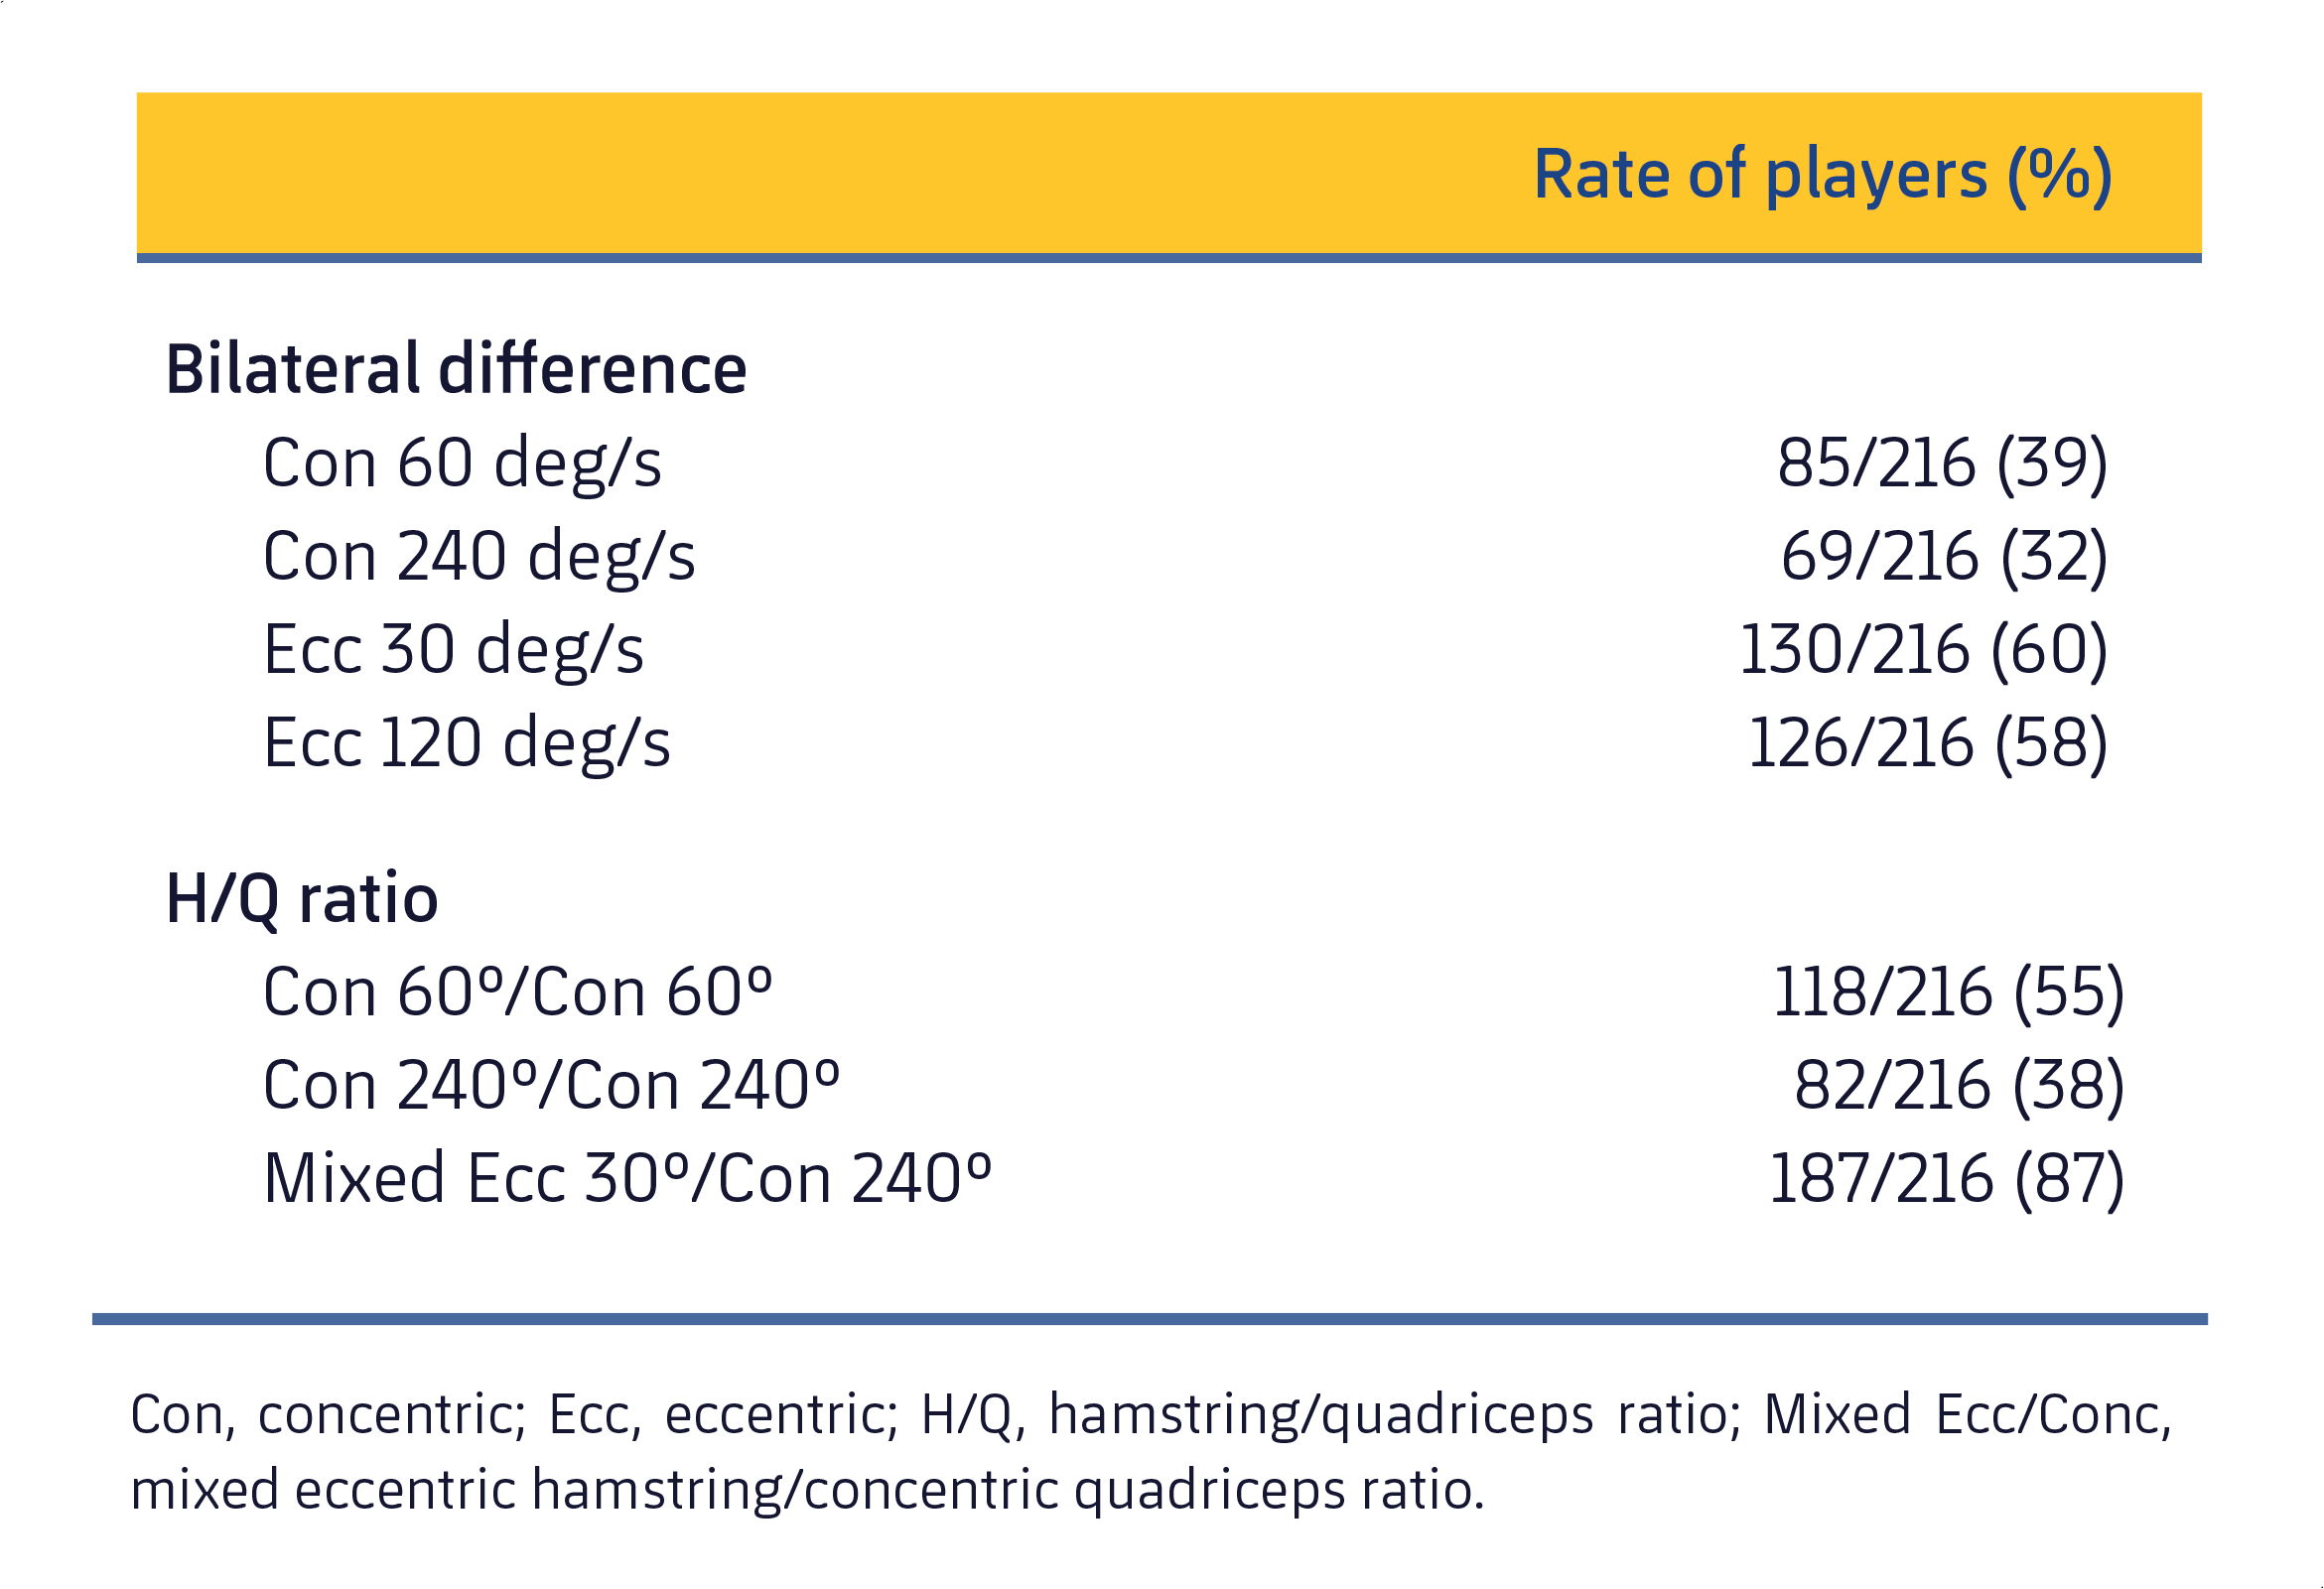 Table 1. List of players who showed imbalances in the muscle groups of the legs (Croisier et al., 2008).